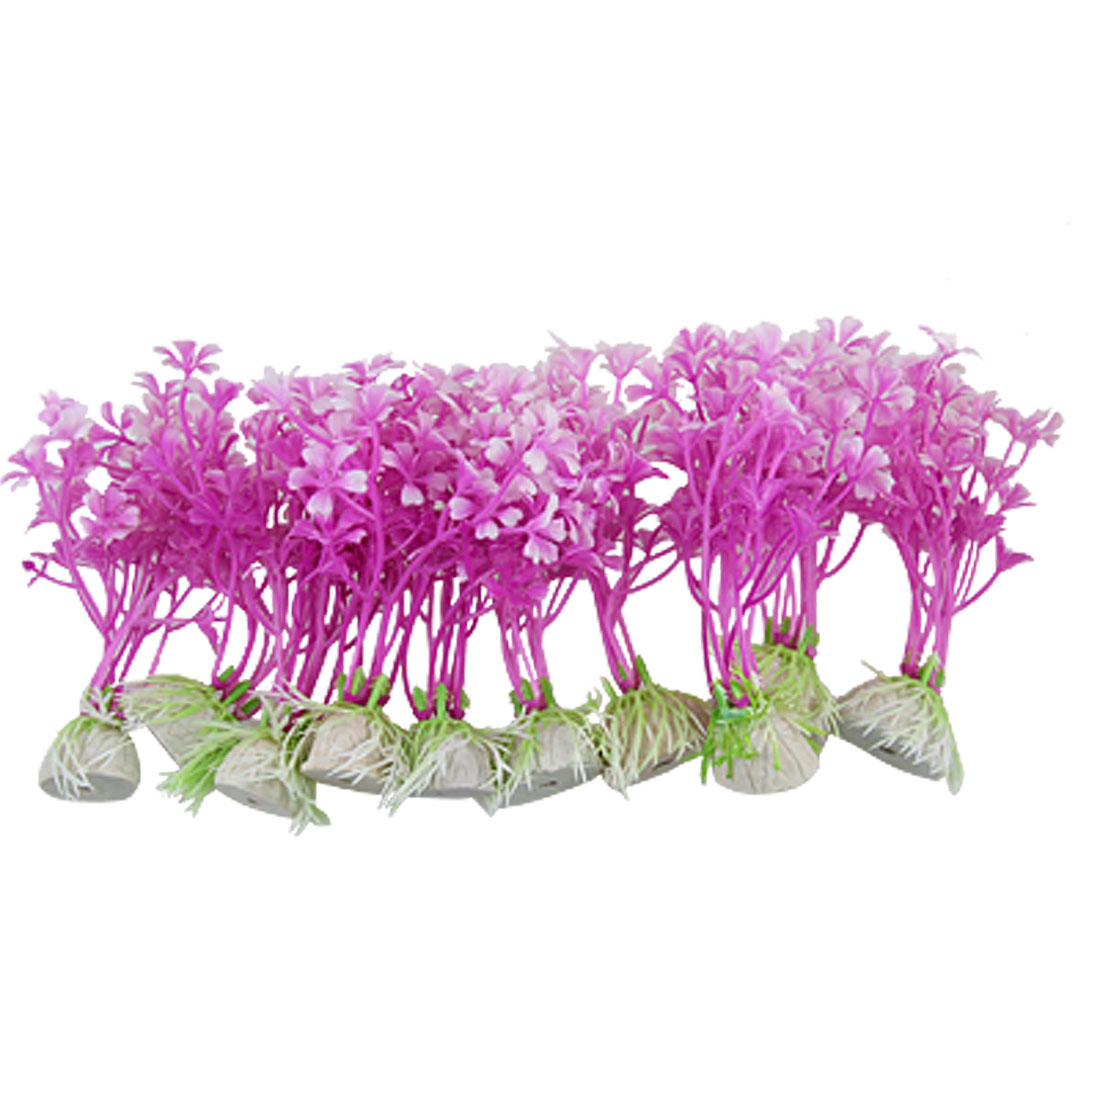 Purple White Ceramic Base Plastic Grass Plants 10 PCS